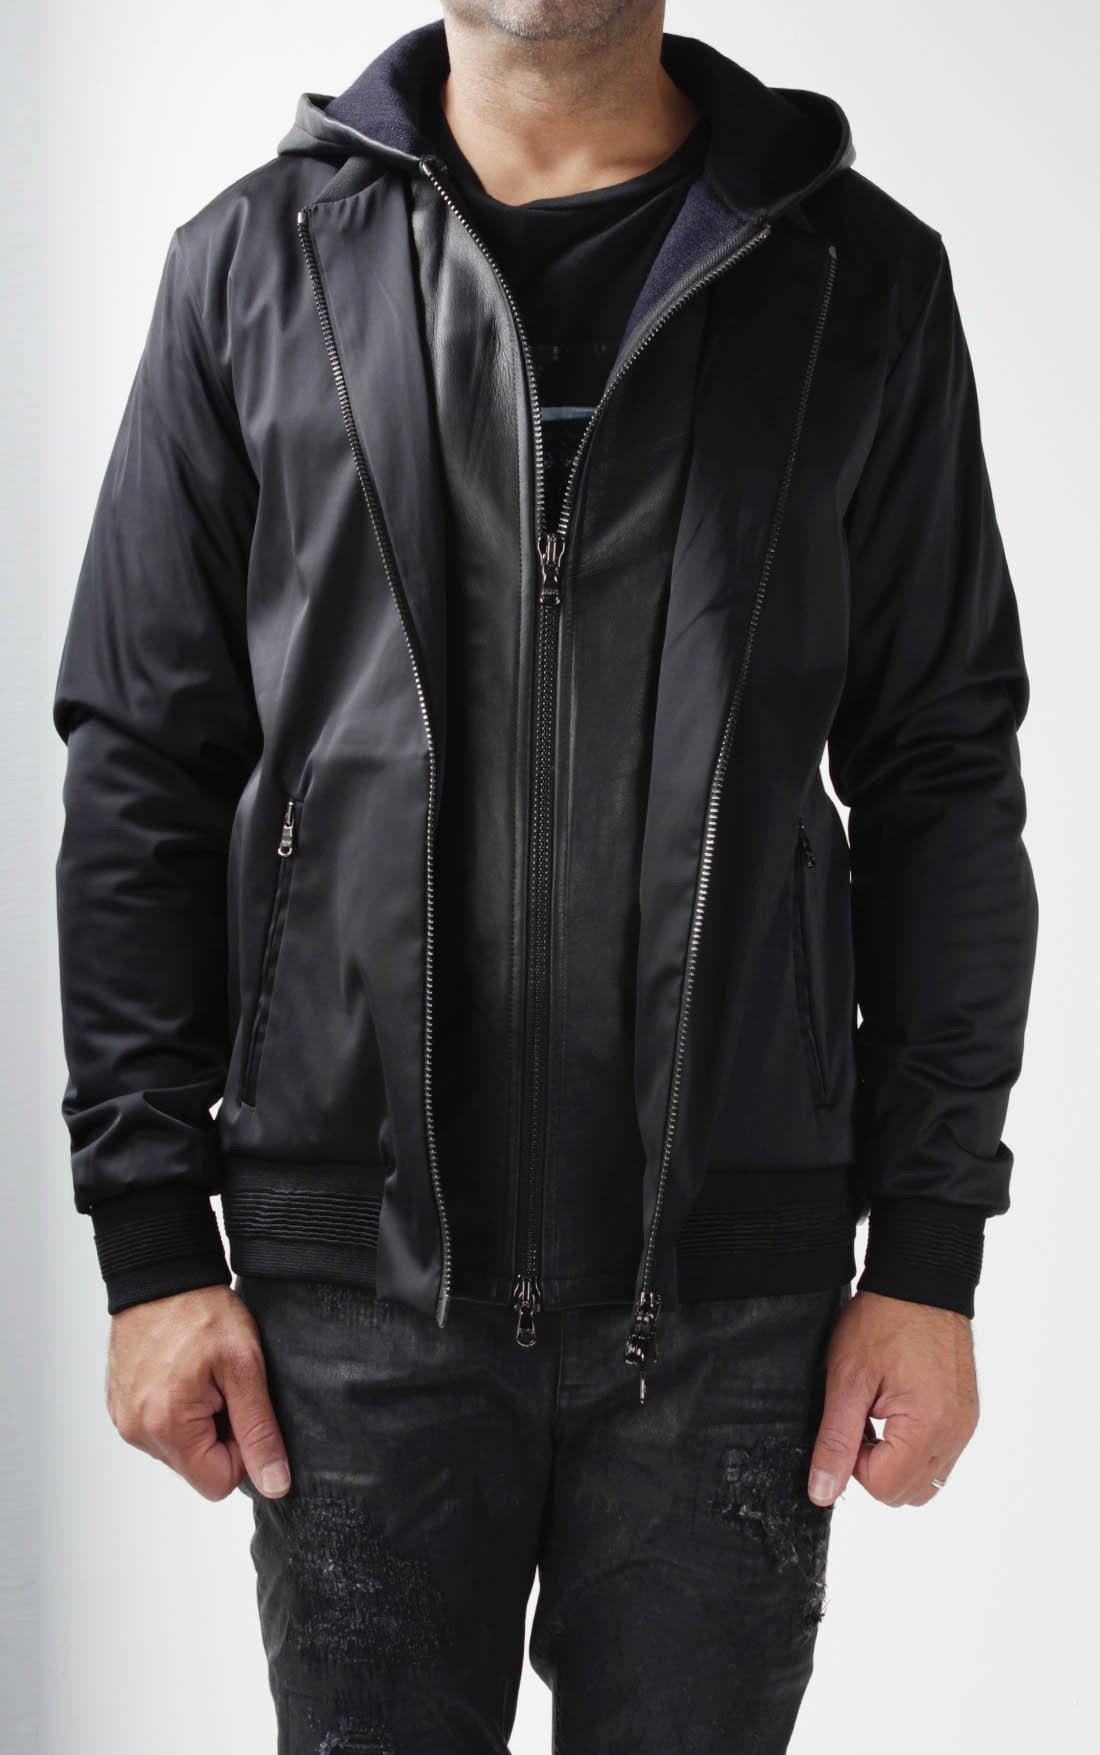 RH45 - Leather Hooded Bomber Jacket (BJ10)